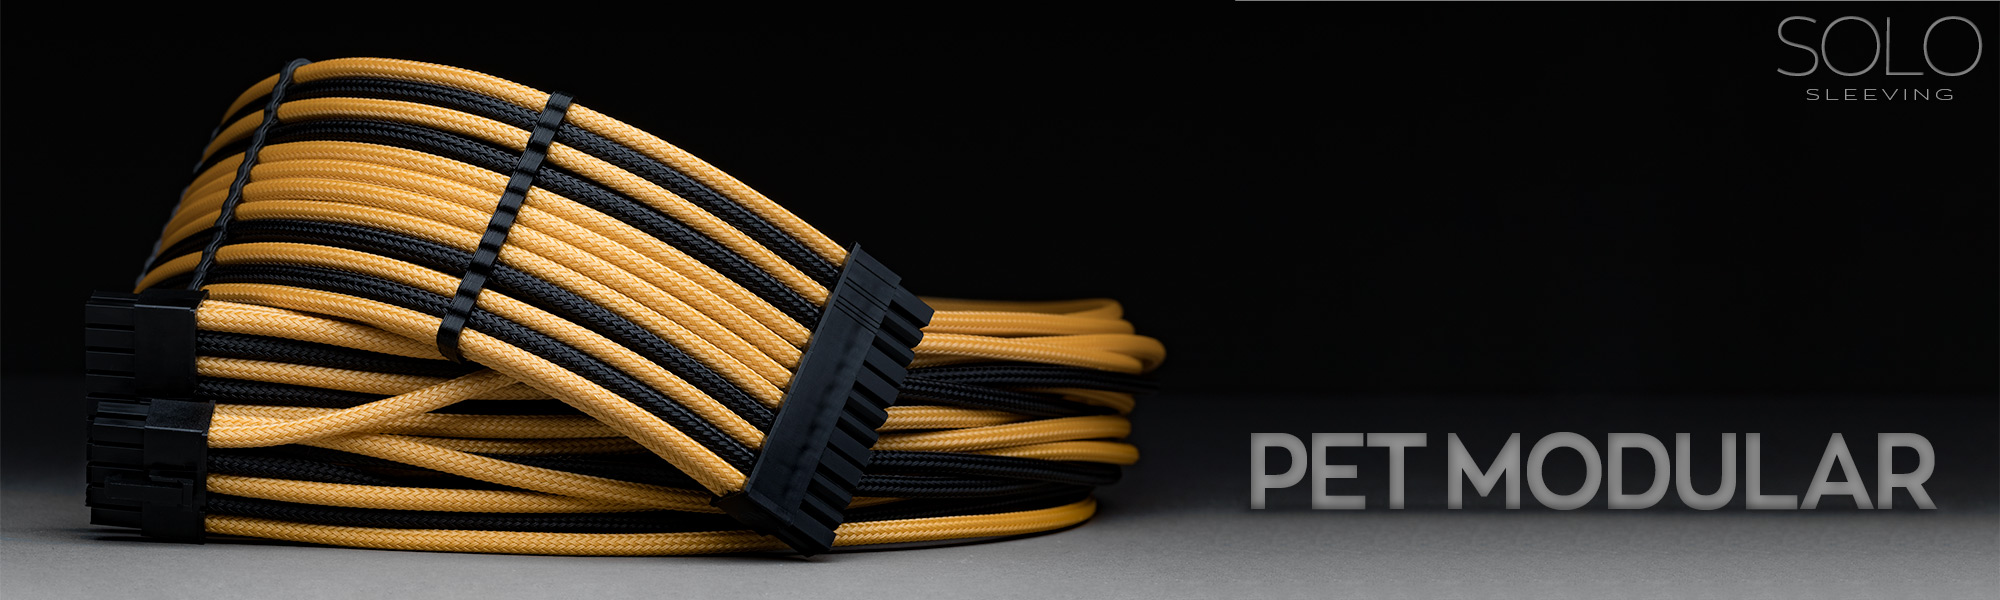 Pet Sleeved Modular Psu Cables Solosleeving